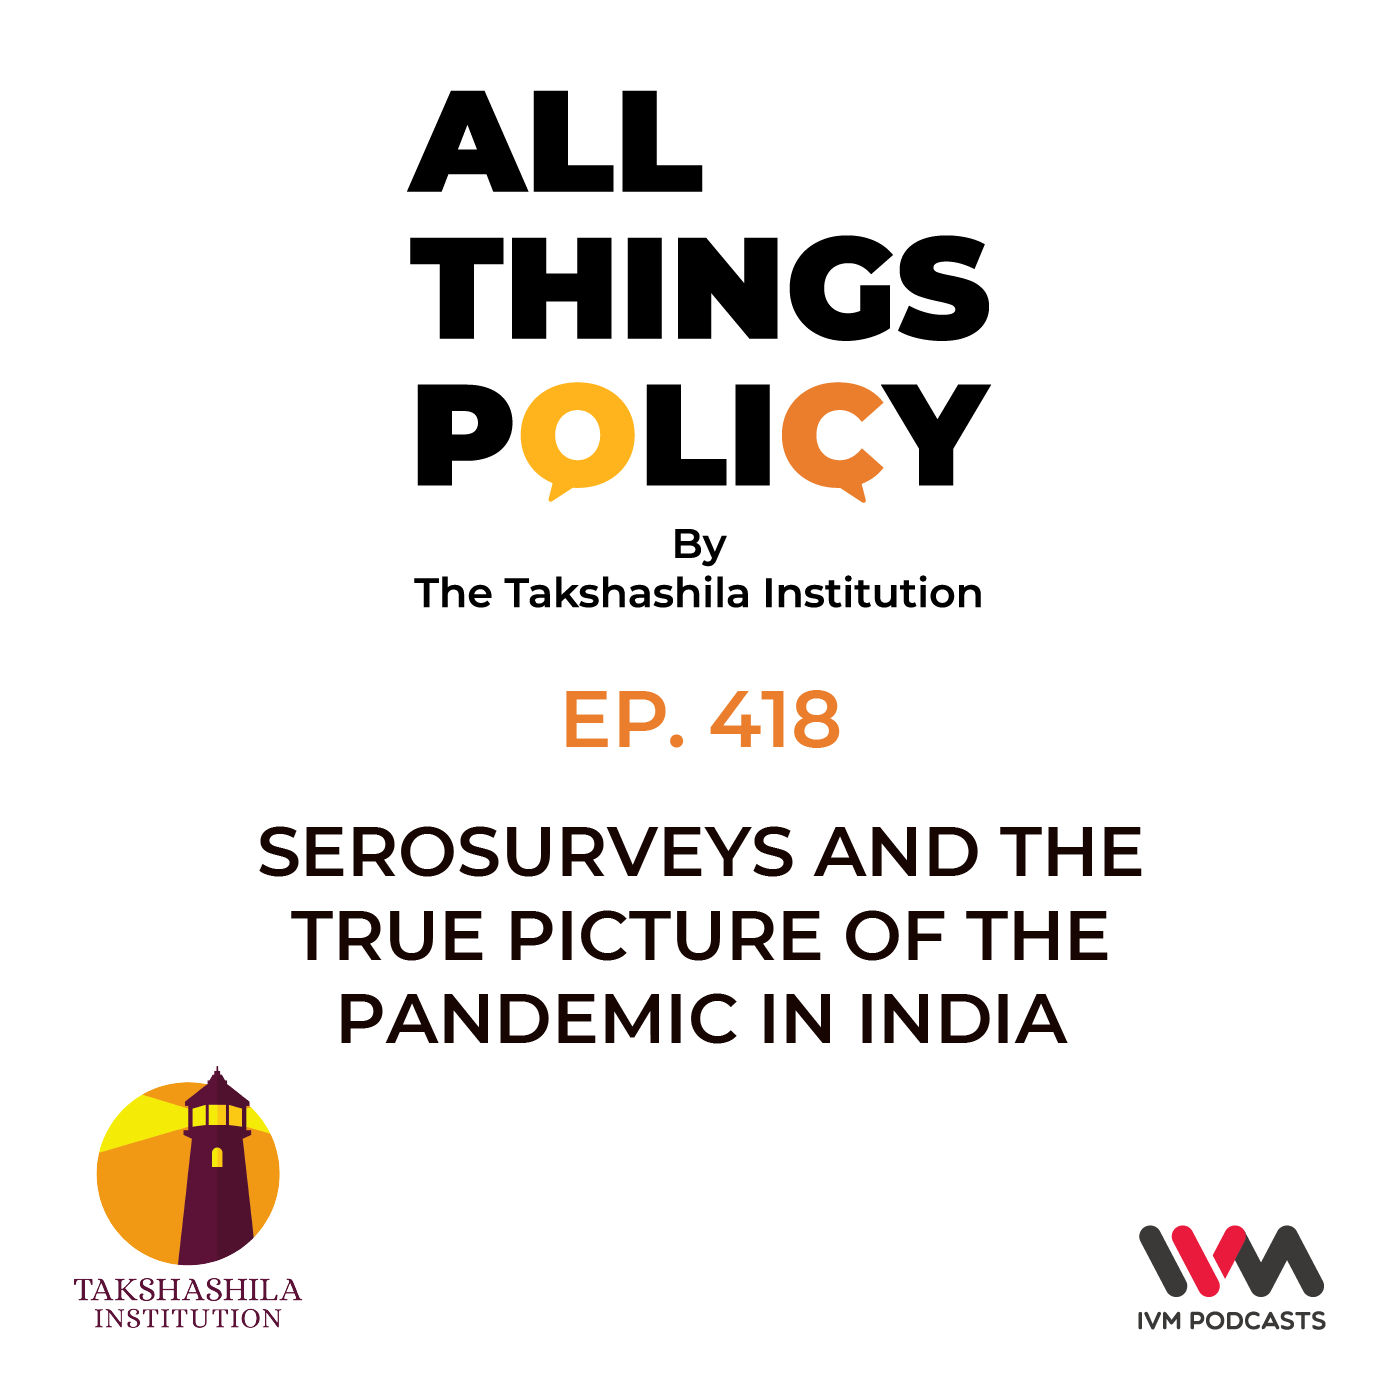 Ep. 418: Serosurveys and the True Picture of the Pandemic in India